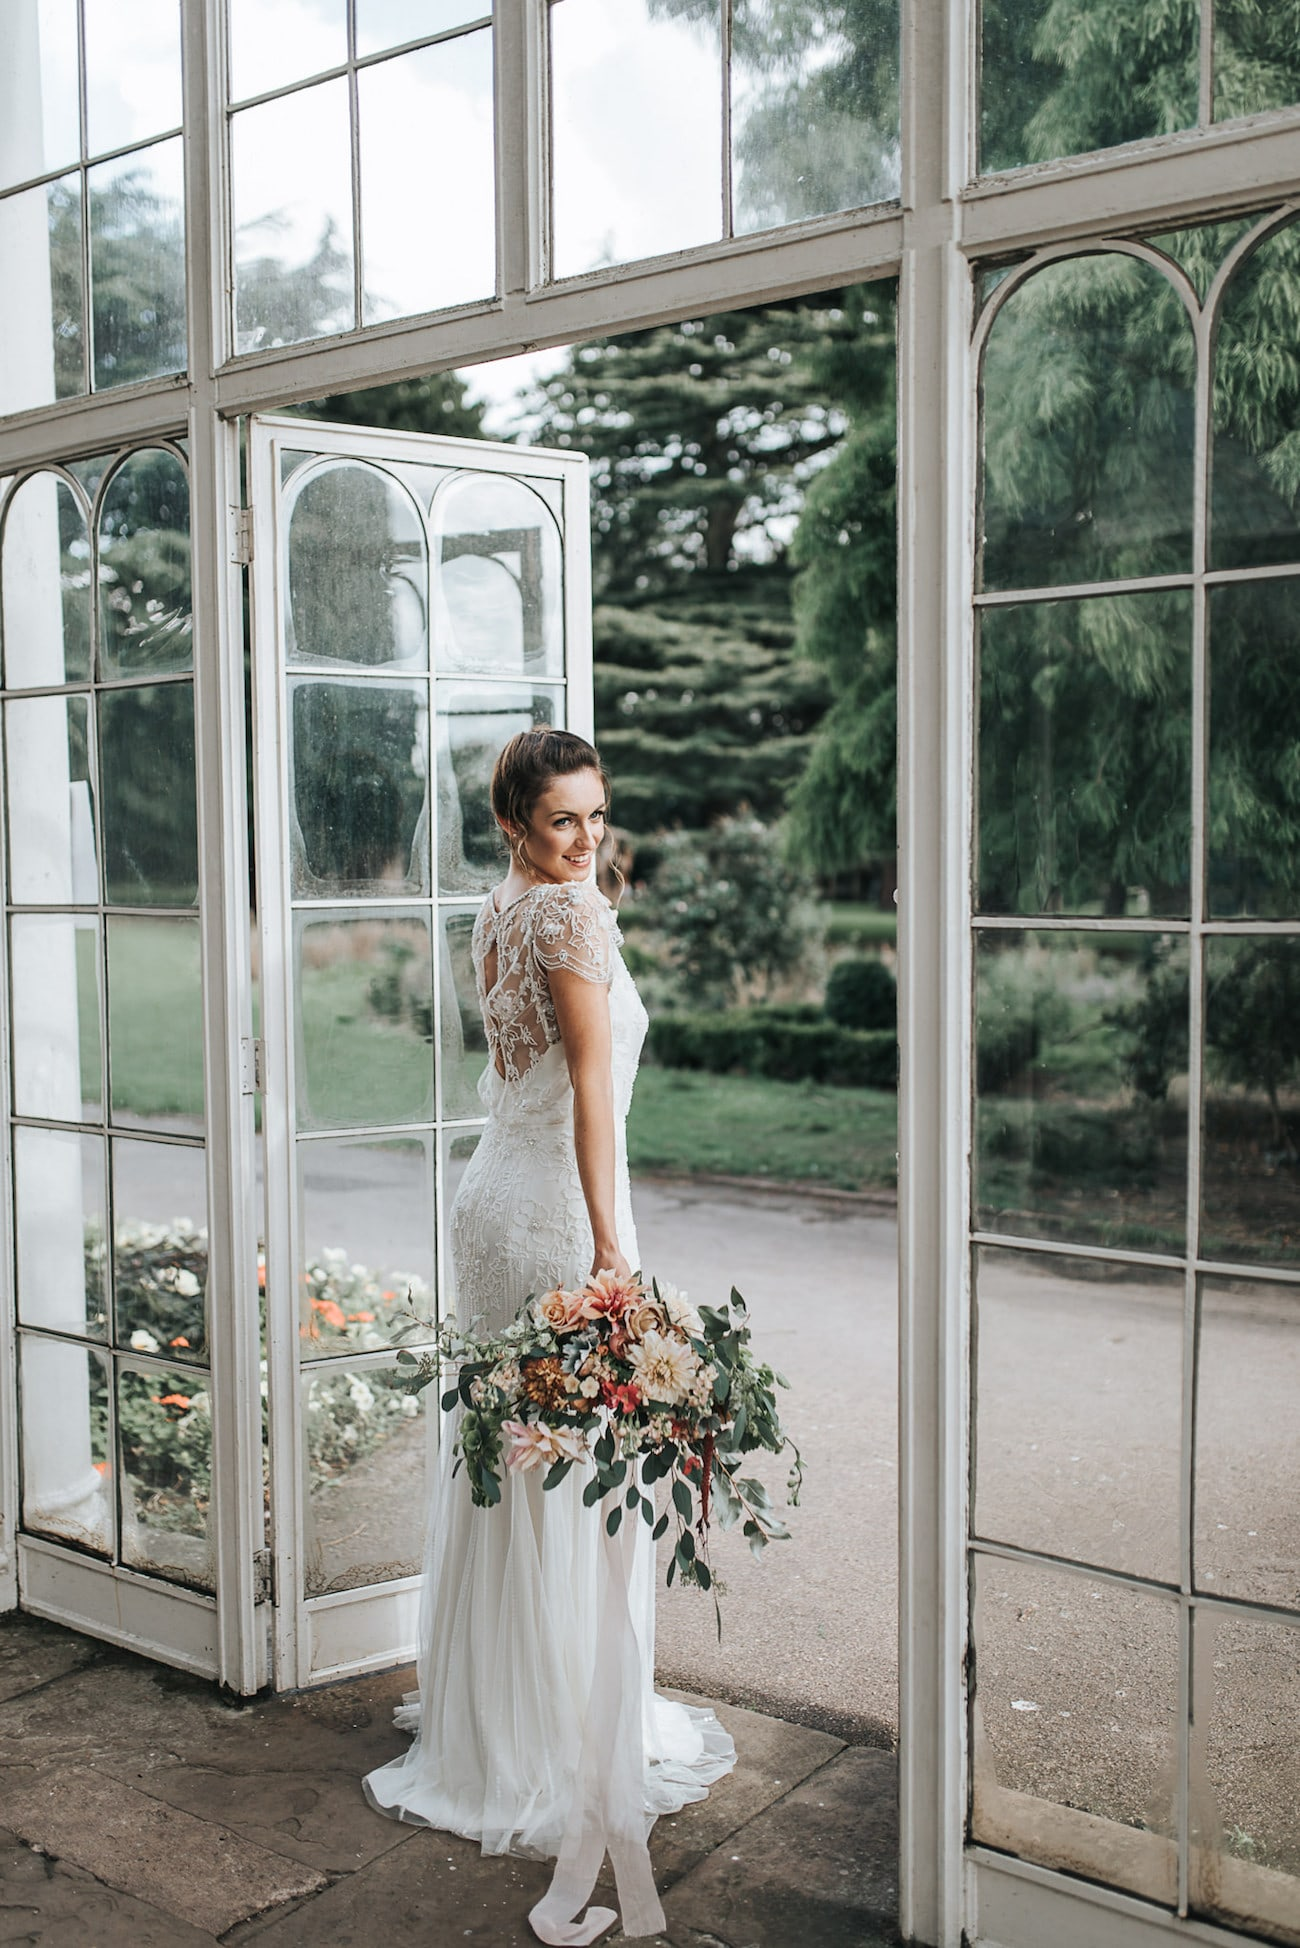 Jenny Packham Bride | Image: Pear & Bear Photography